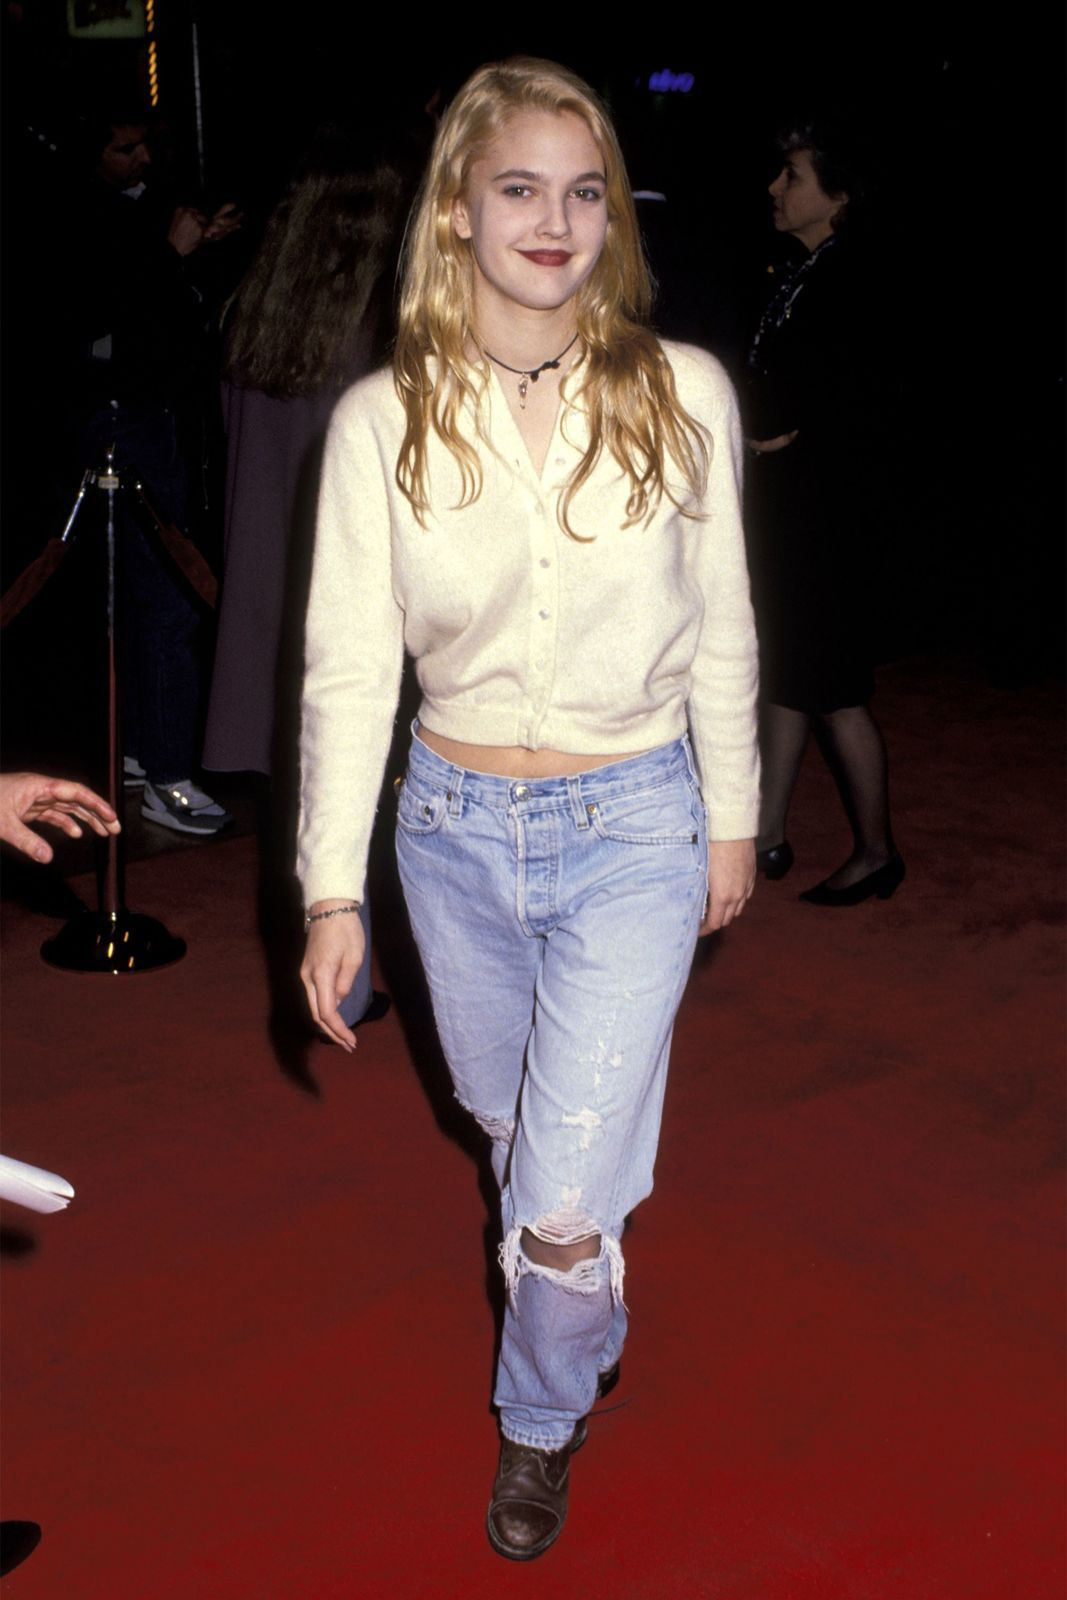 The 90s is Always in Fashion